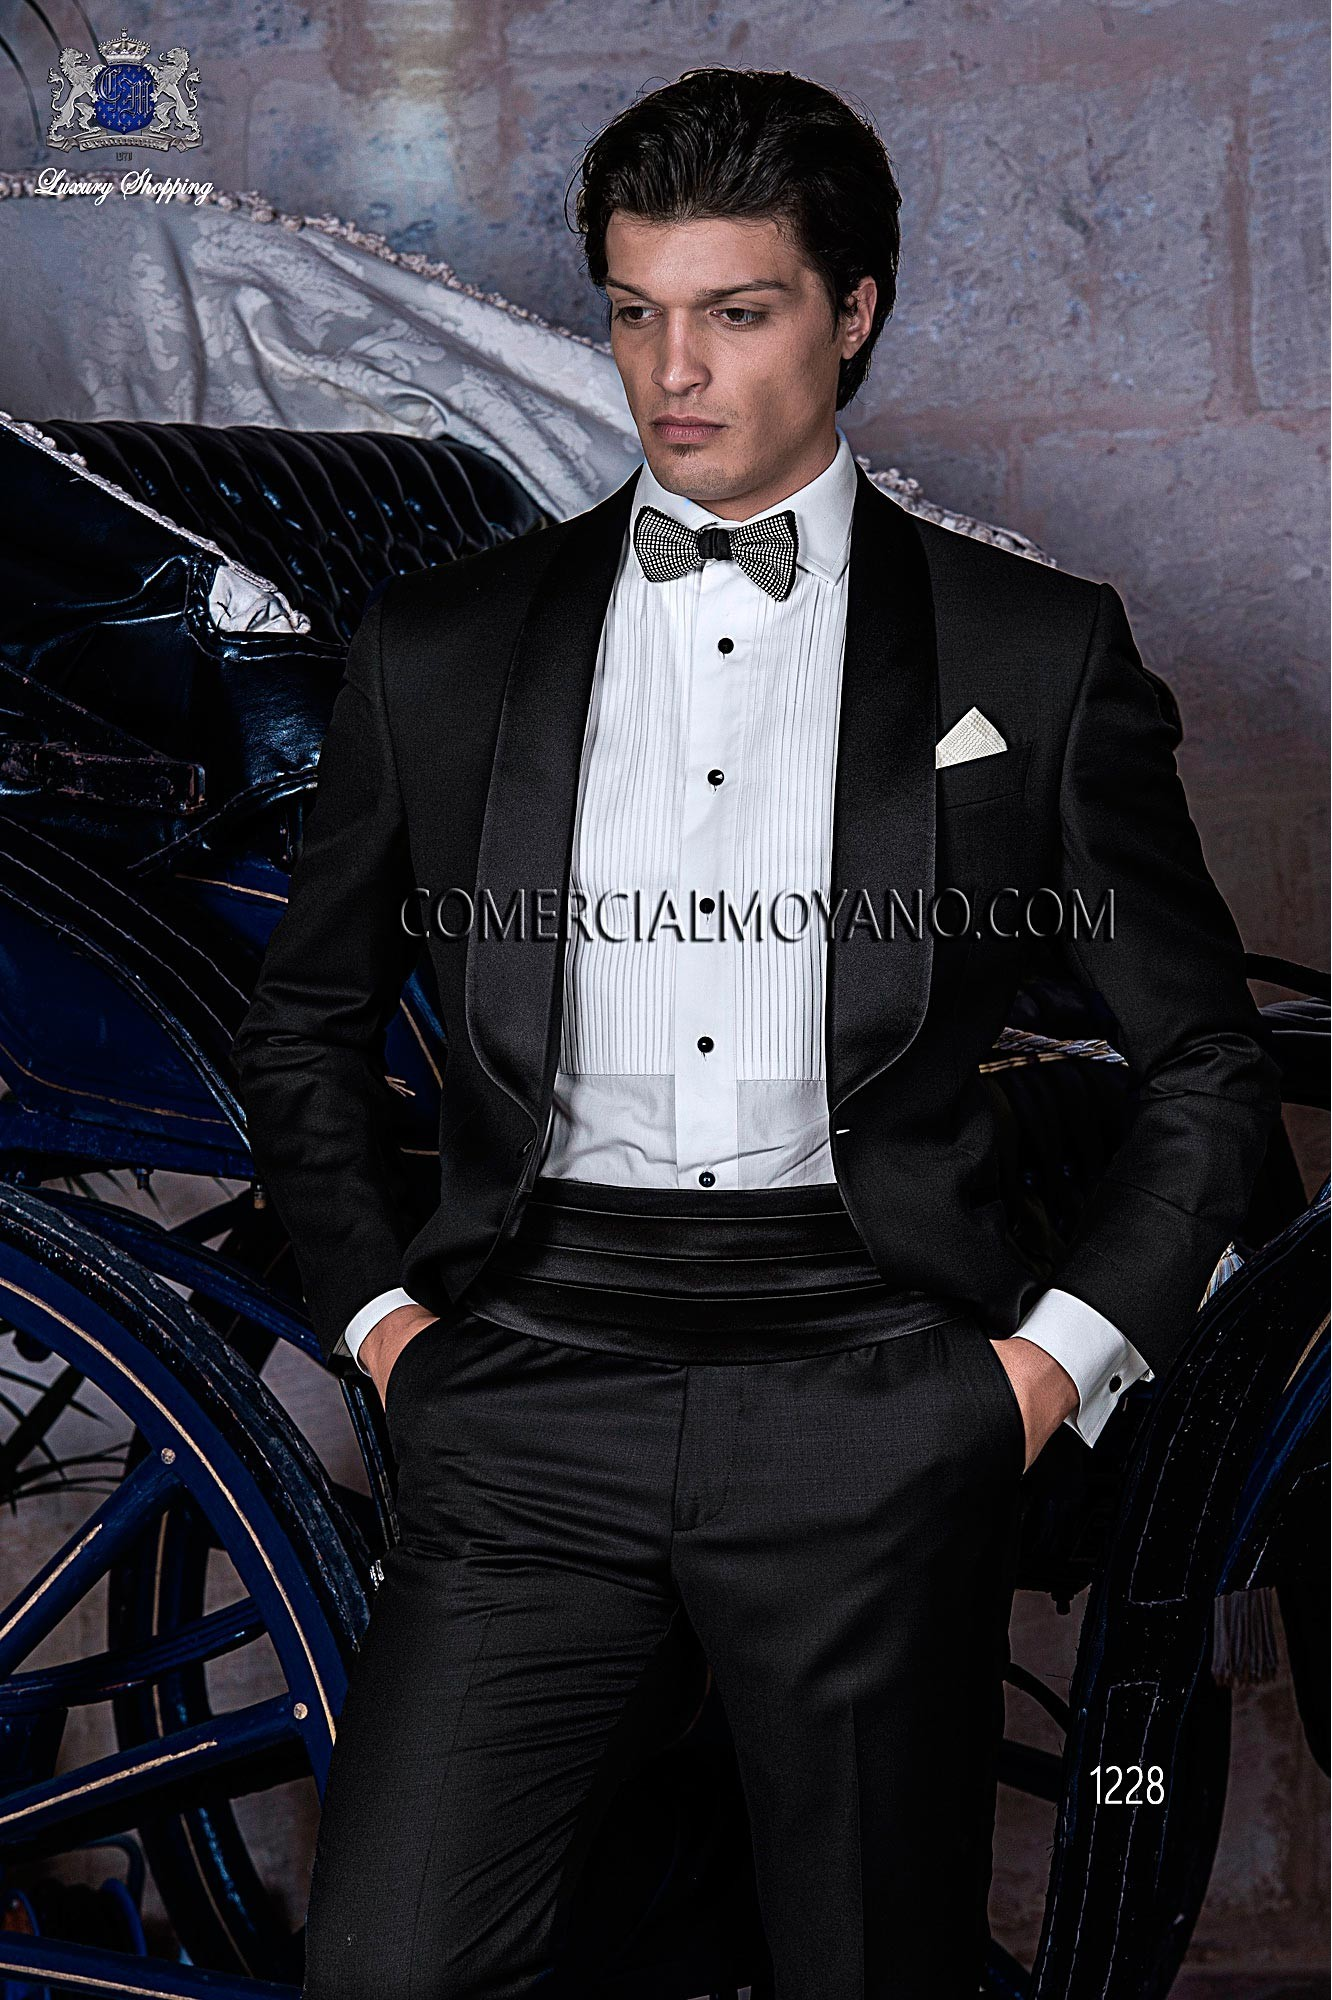 Black Tie Black men wedding suit model 1228 Ottavio Nuccio Gala